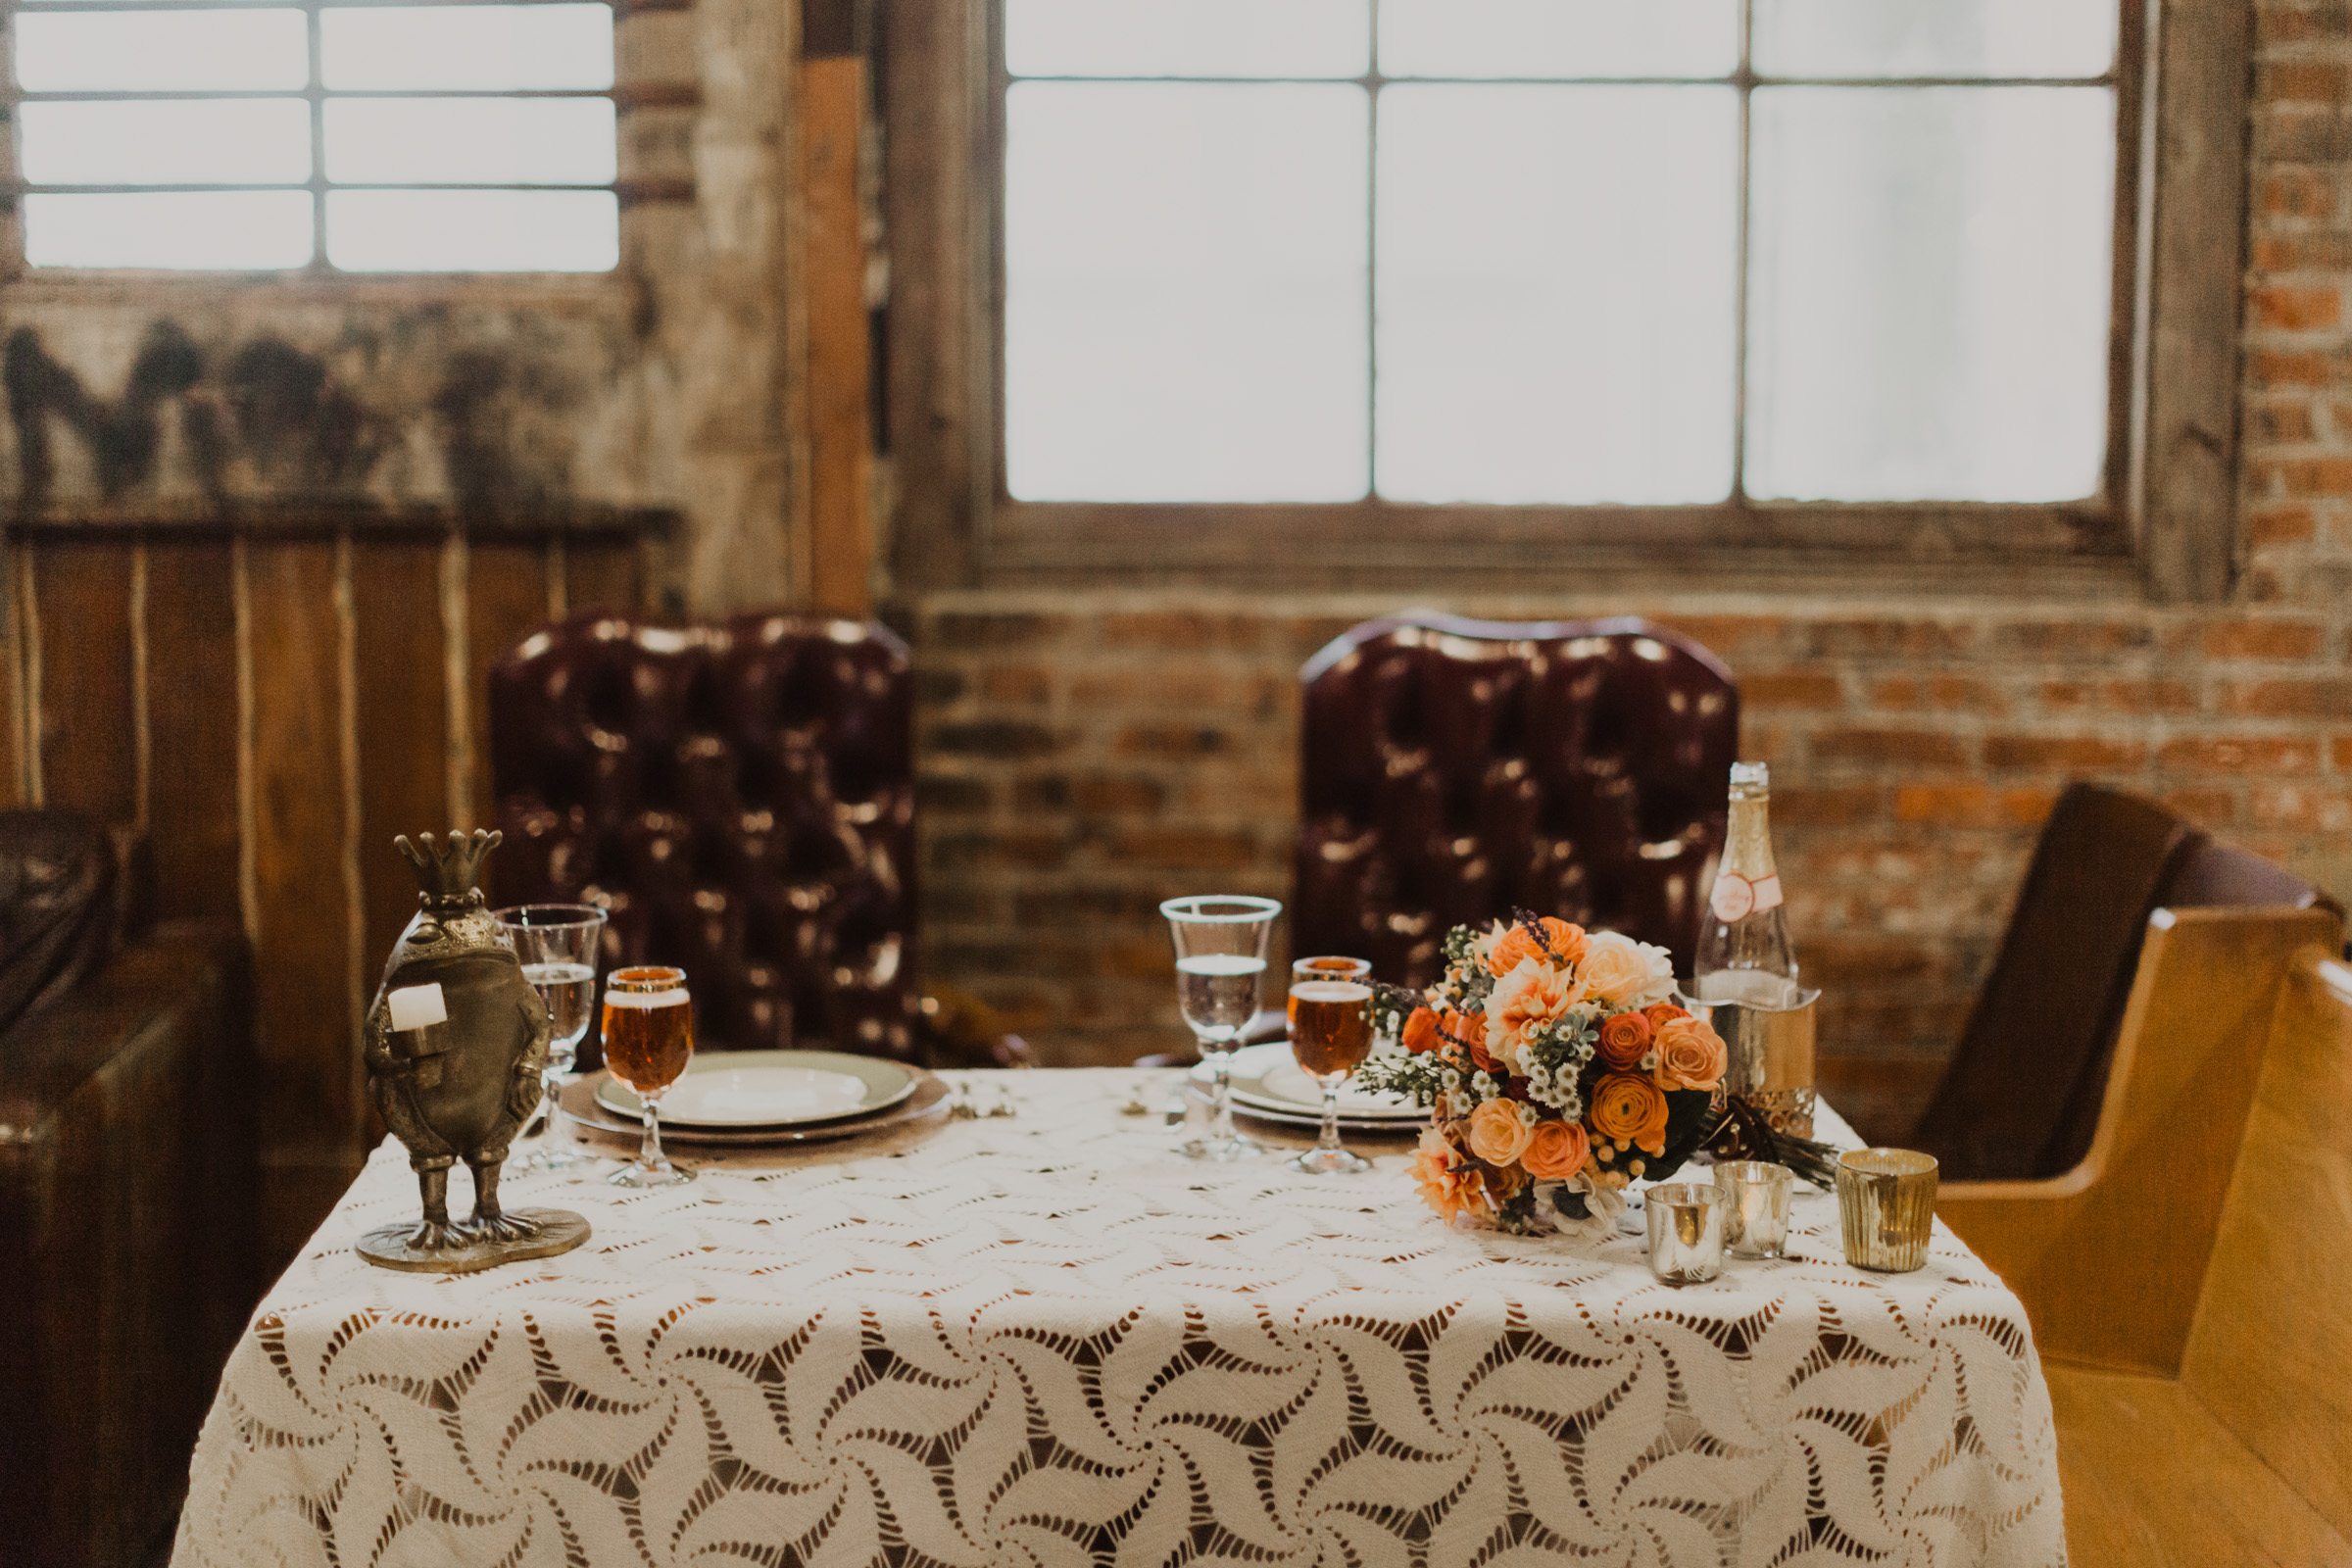 alyssa barletter photography styled shoot wedding inspiration kansas city west bottoms photographer motorcycle edgy intimate-3.jpg